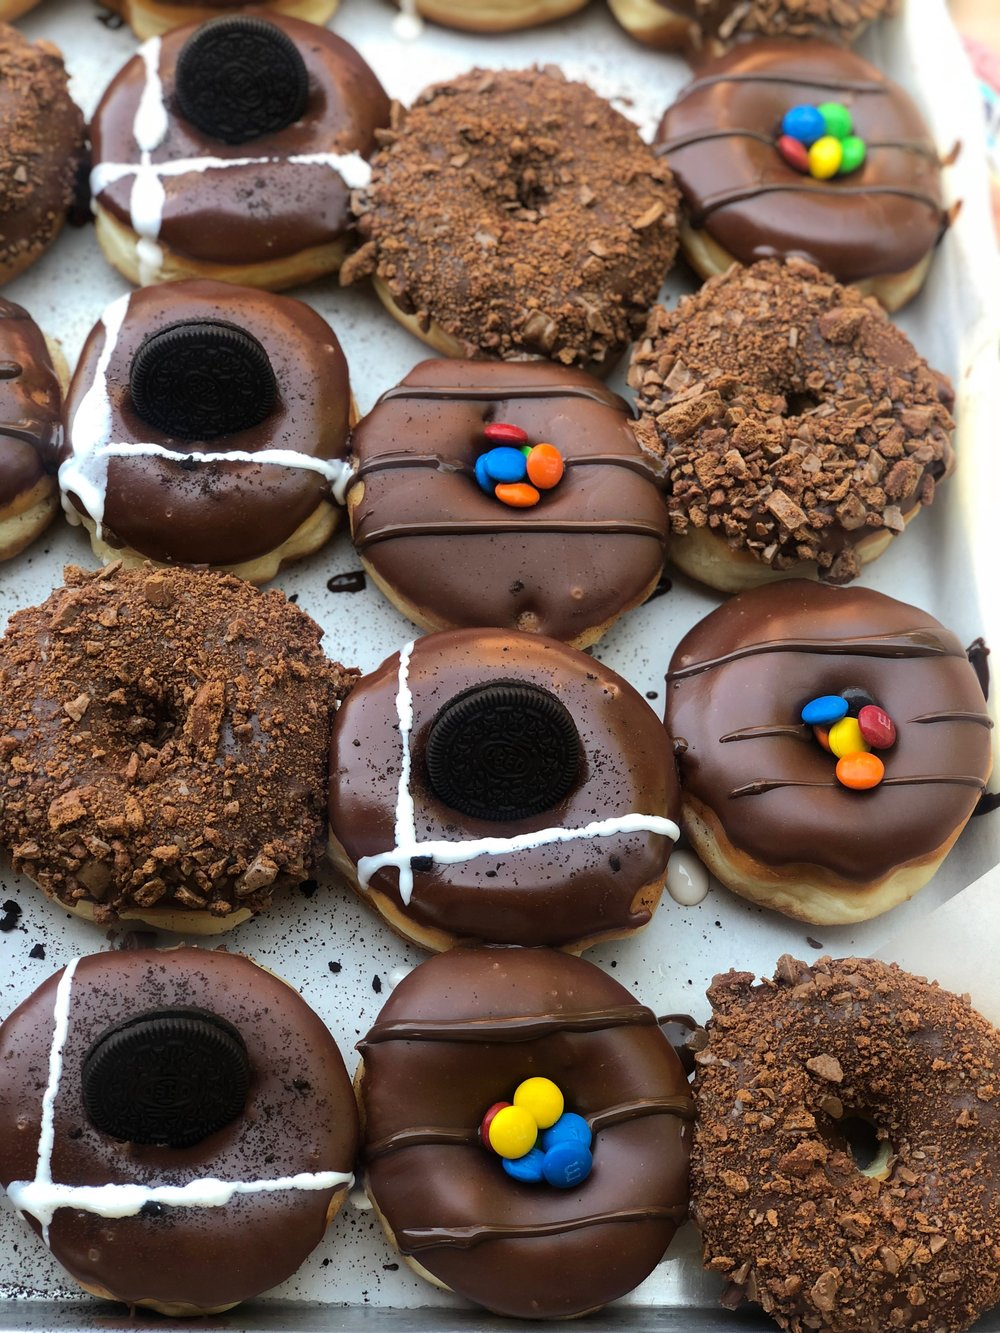 Donut Kitchen - Mixed Iced and Kids donuts.jpg